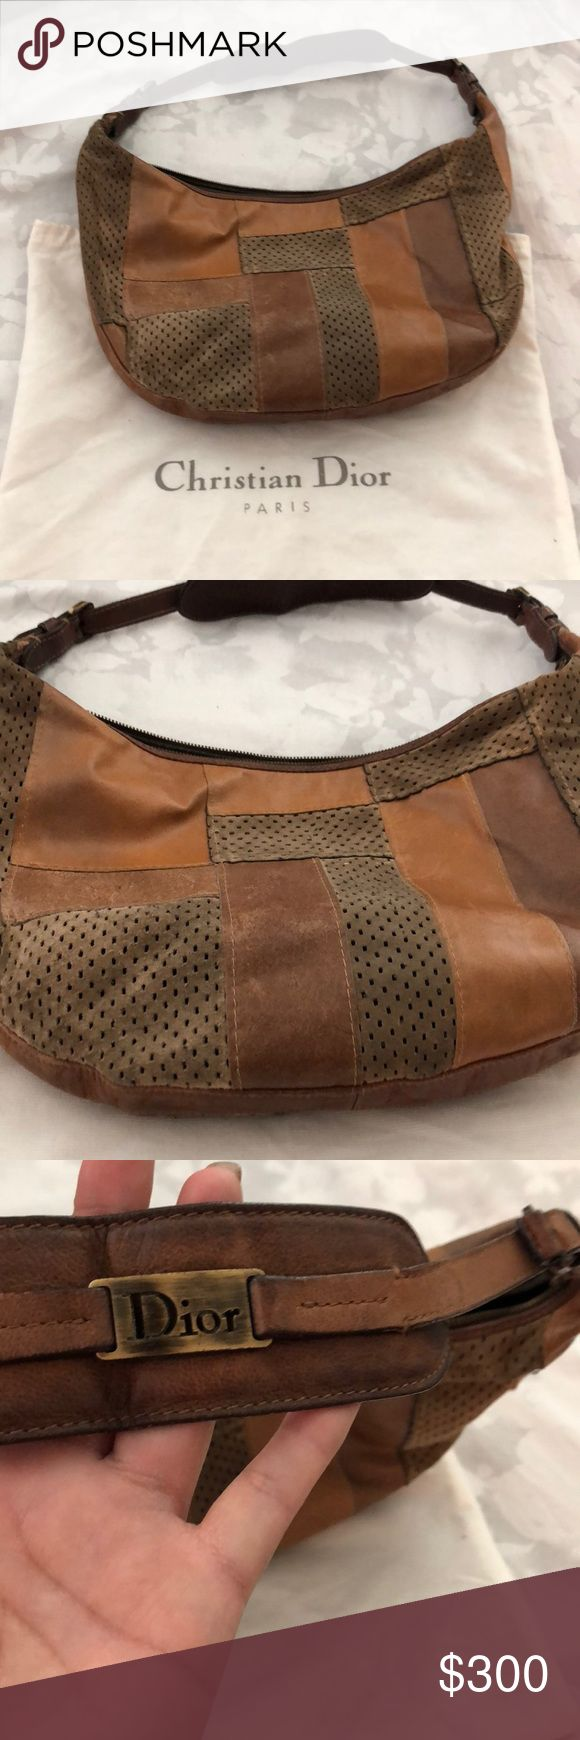 Vintage authentic Christian Dior leather patchwork Dior